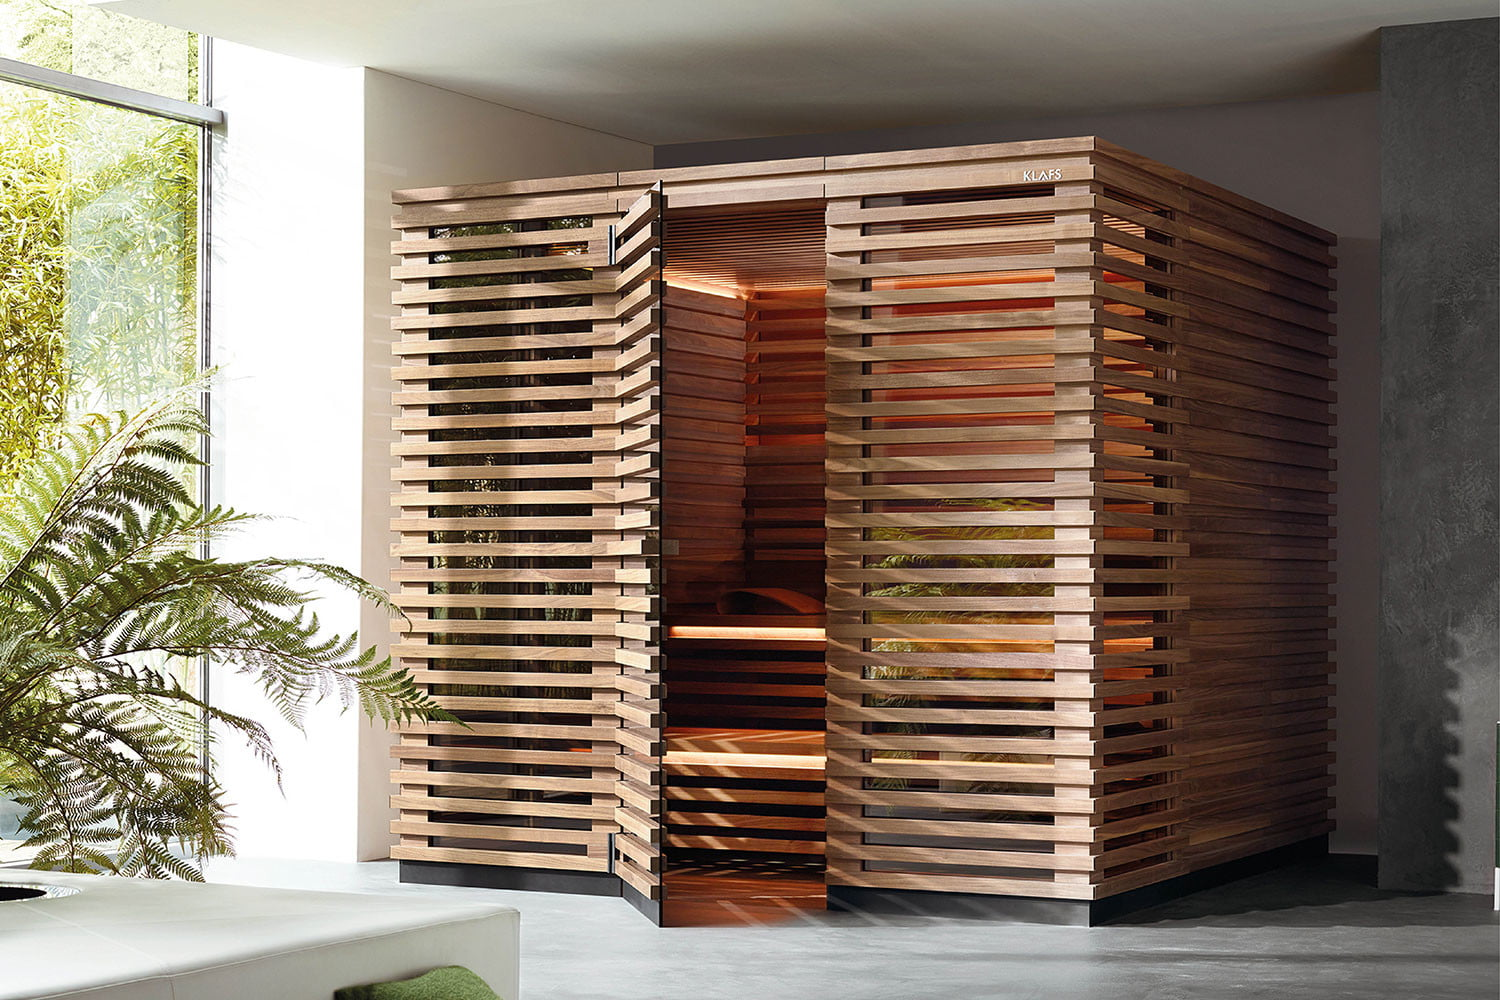 Klafs S1 Sauna Is Meant To Fit In Apartments Digital Trends